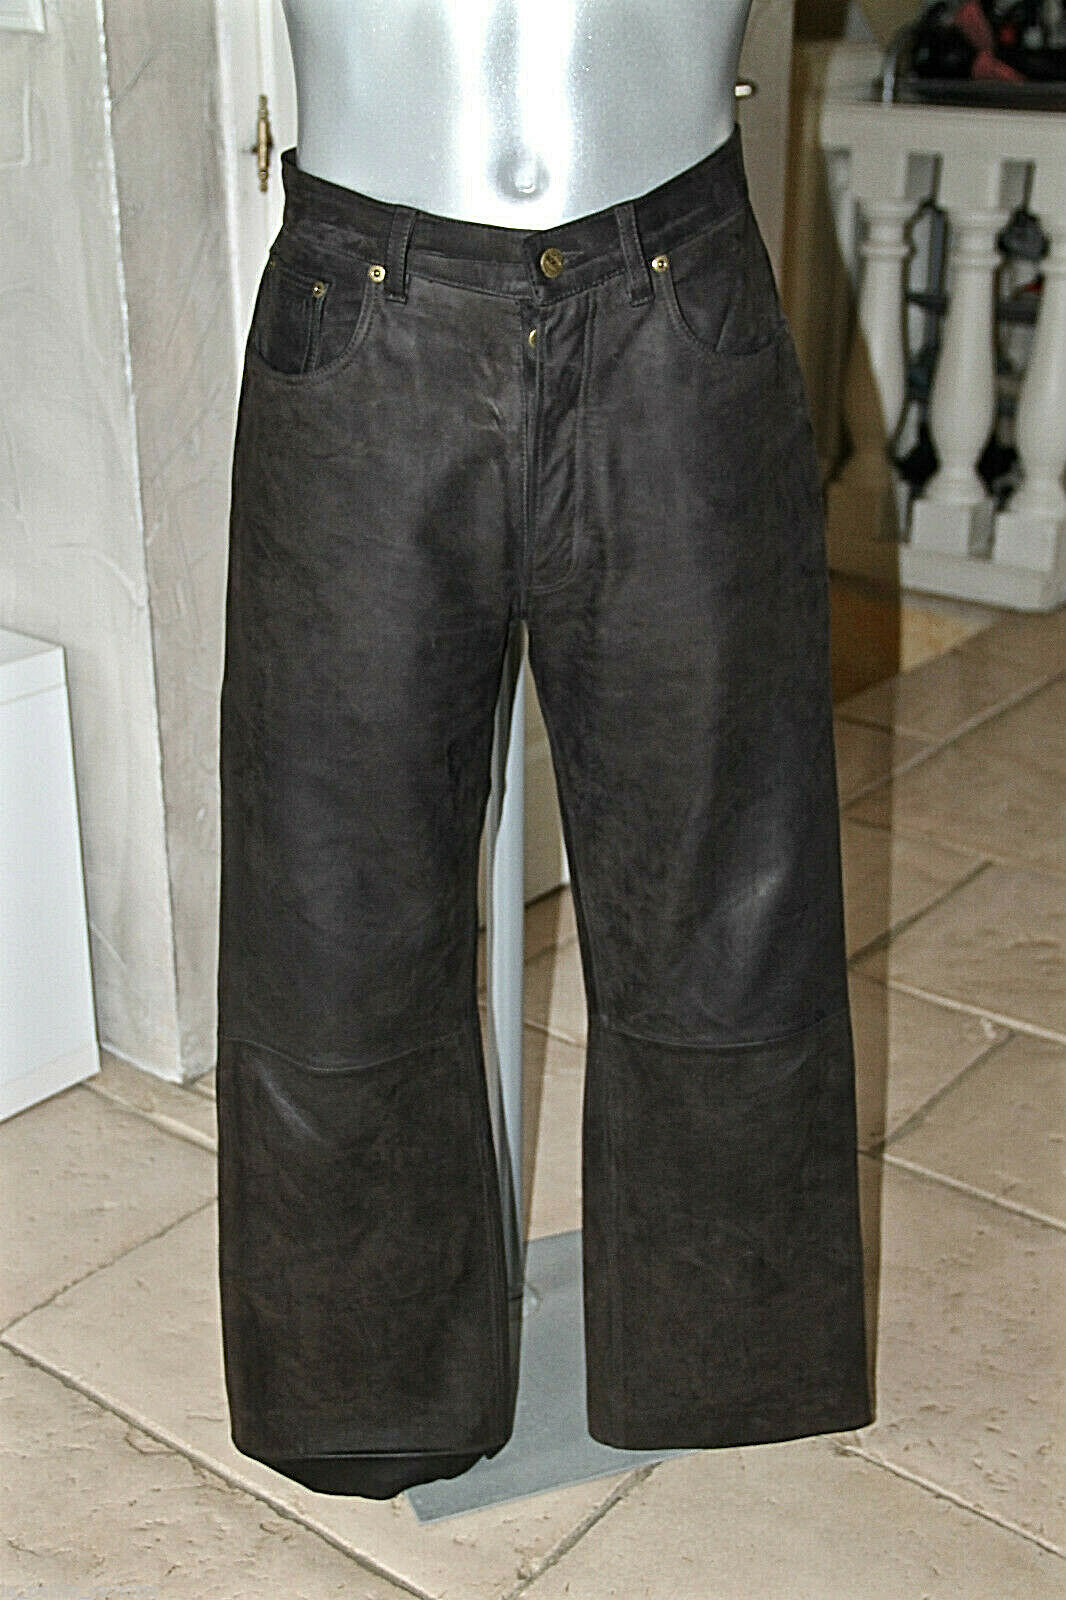 Jeans Man Leather Cow Brown Oakwood Size 42 Fr W32 Mint Val